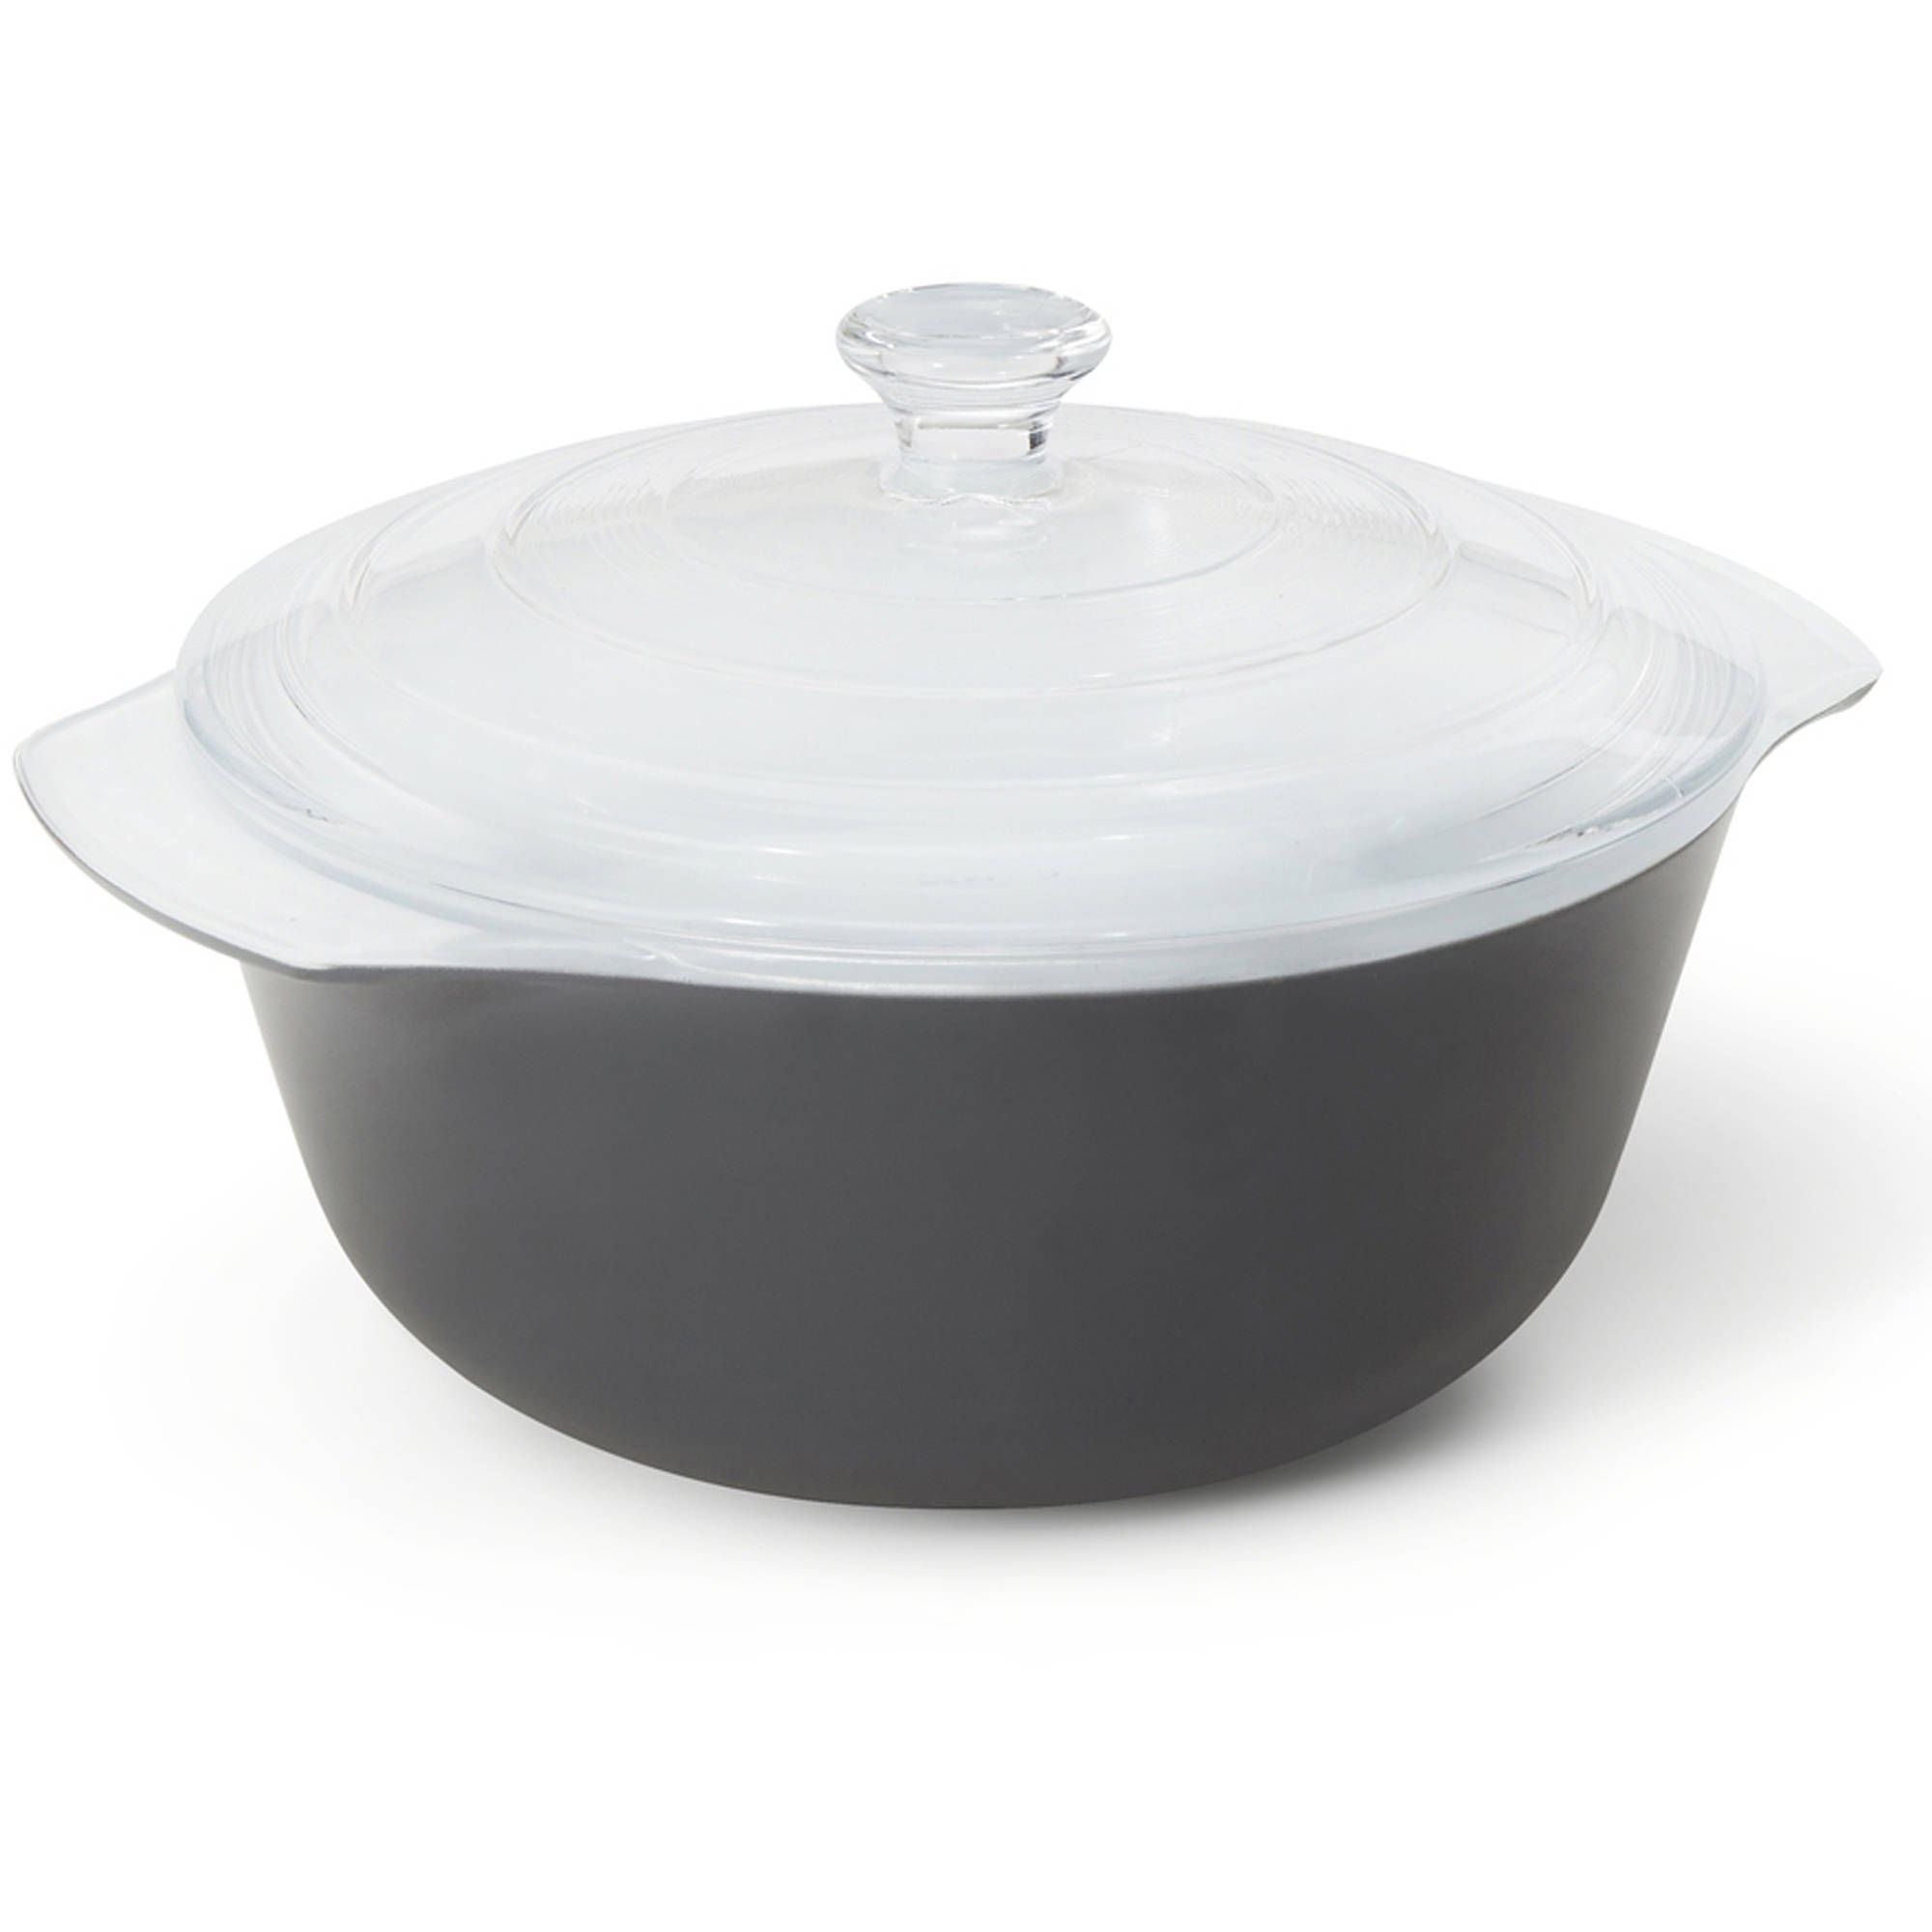 Creo SmartGlass Brooklyn Covered Casserole Dish, Dark Gray by Generic